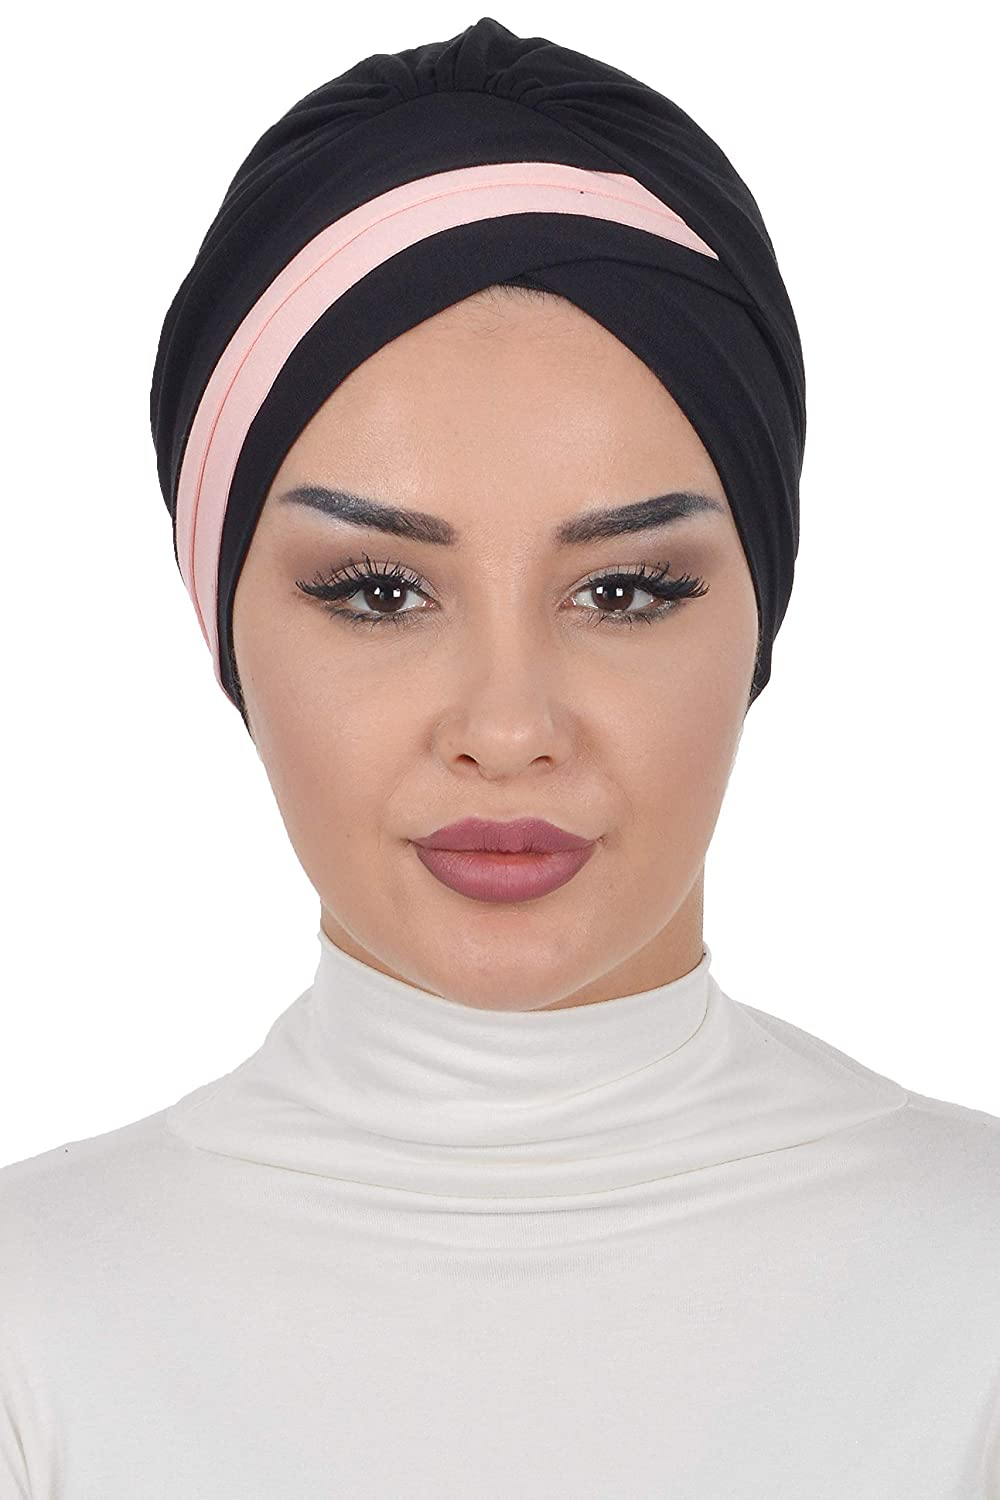 Instant Turban Cotton Scarf Head Wrap Cancer Chemo Headwear Two Colored